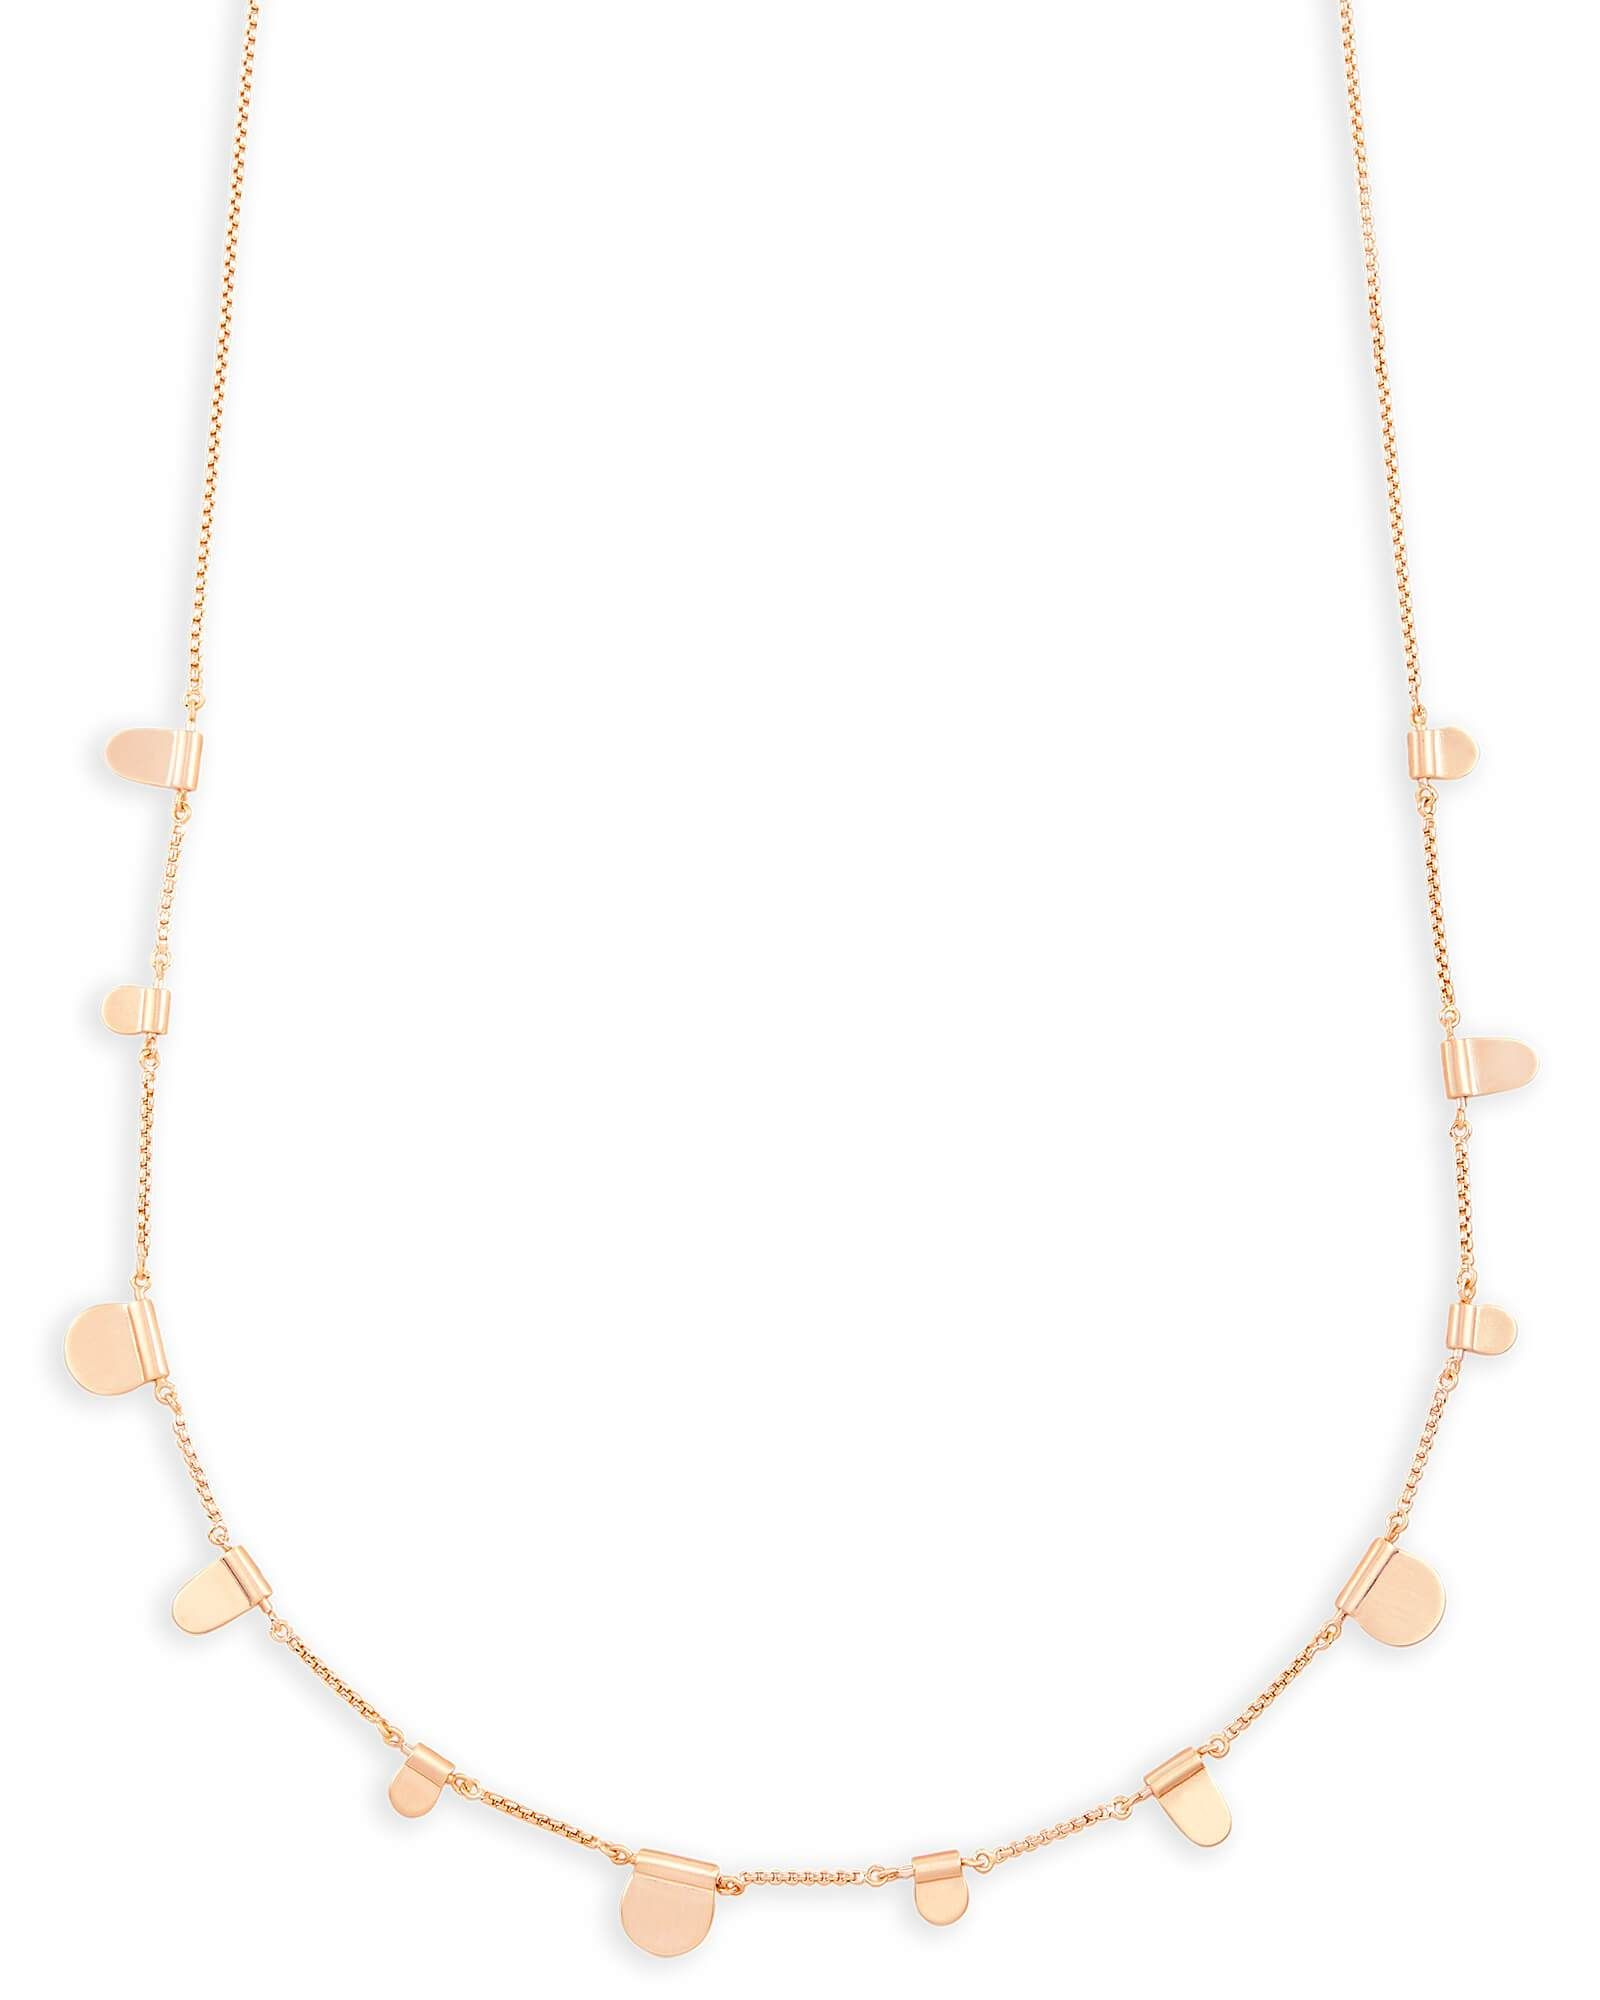 Kendra scott olive necklace in rose gold products